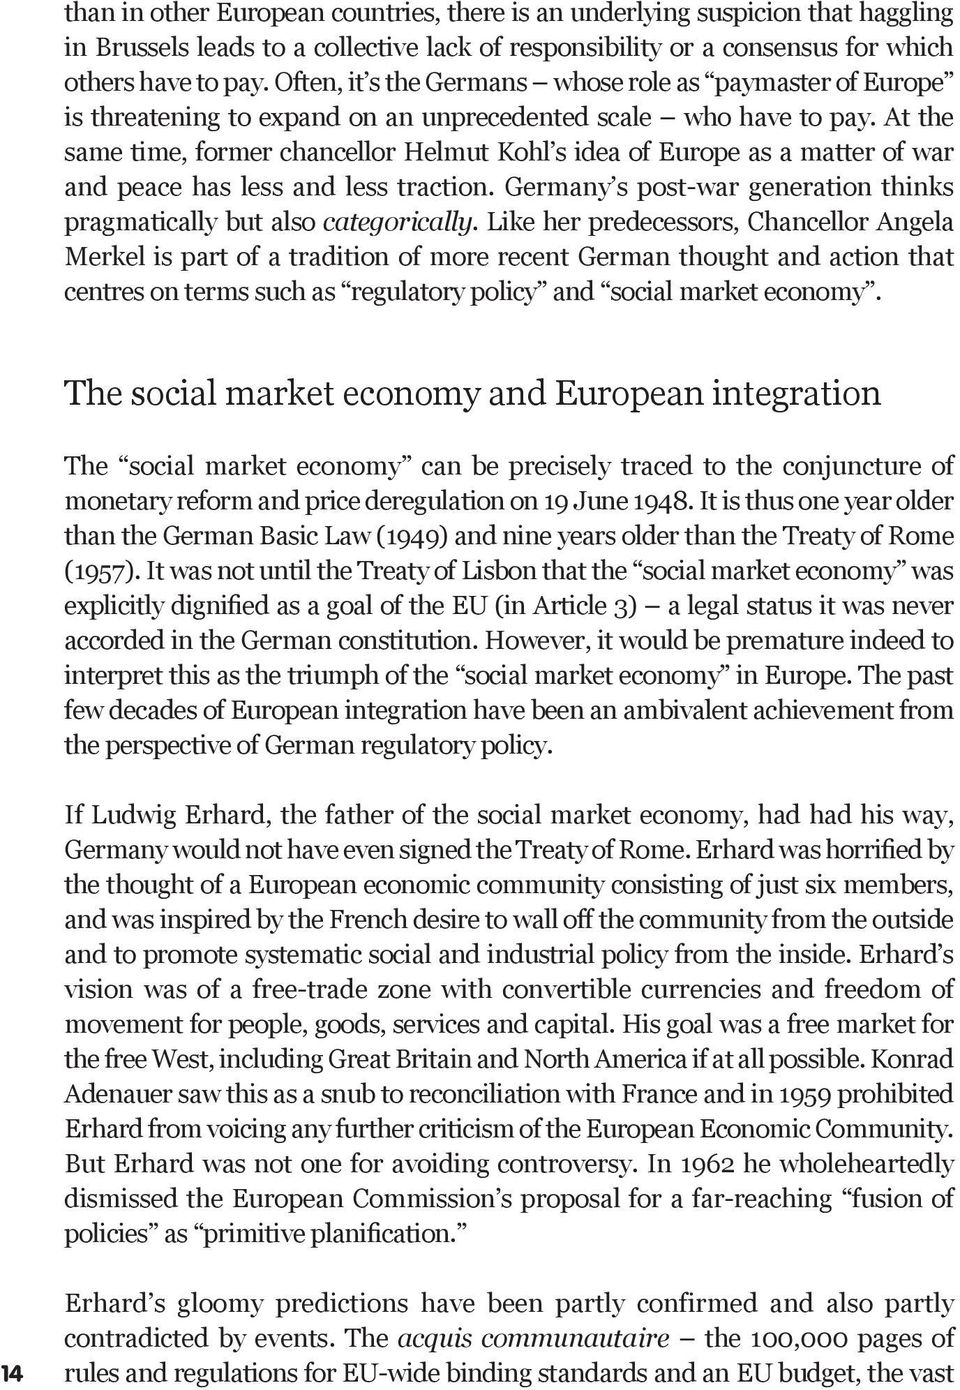 At the same time, former chancellor Helmut Kohl s idea of Europe as a matter of war and peace has less and less traction. Germany s post-war generation thinks pragmatically but also categorically.